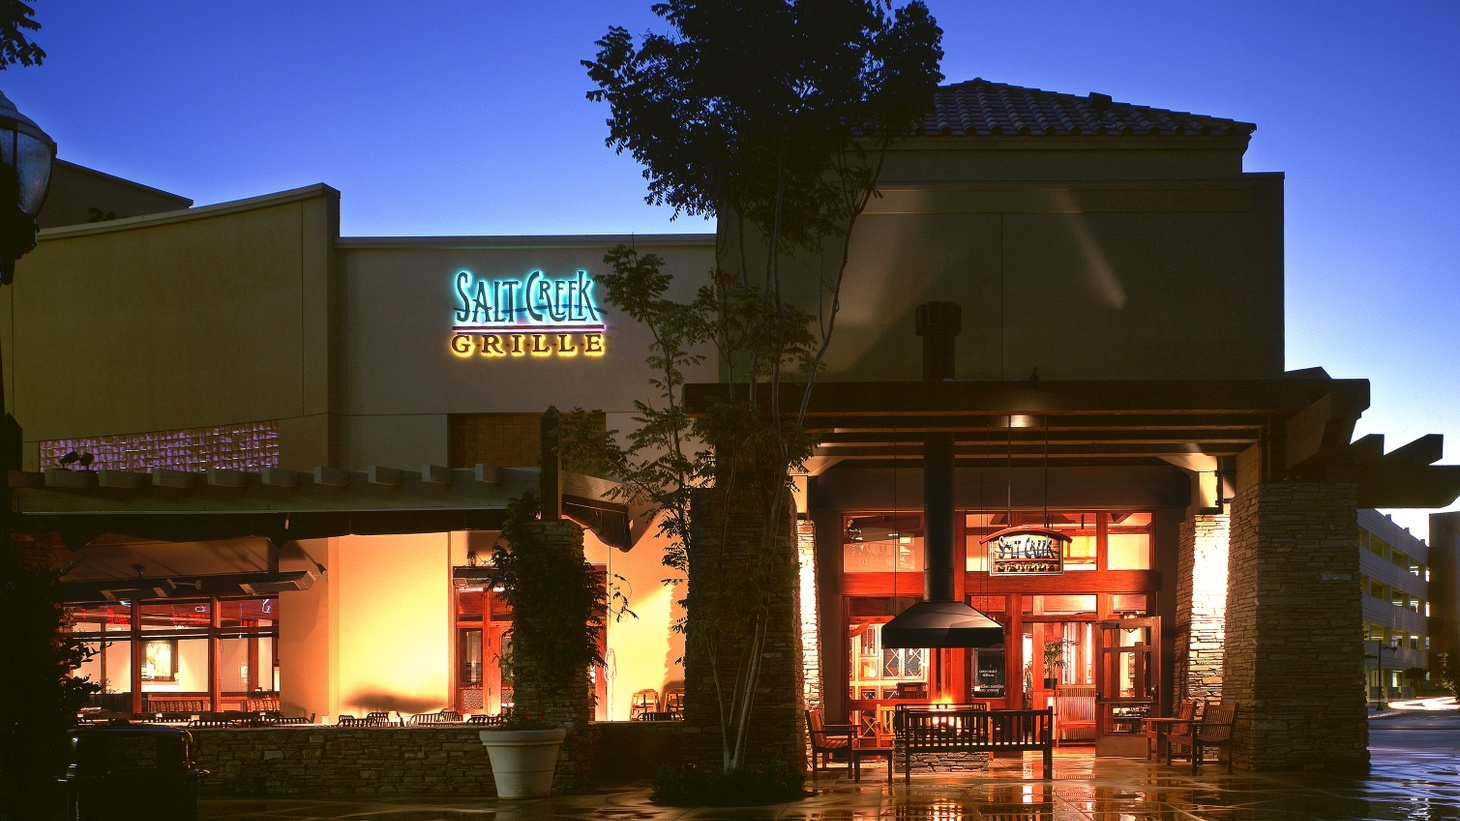 Salt Creek Grille in Valencia will be able to serve customers outdoors starting January 29, 2021.